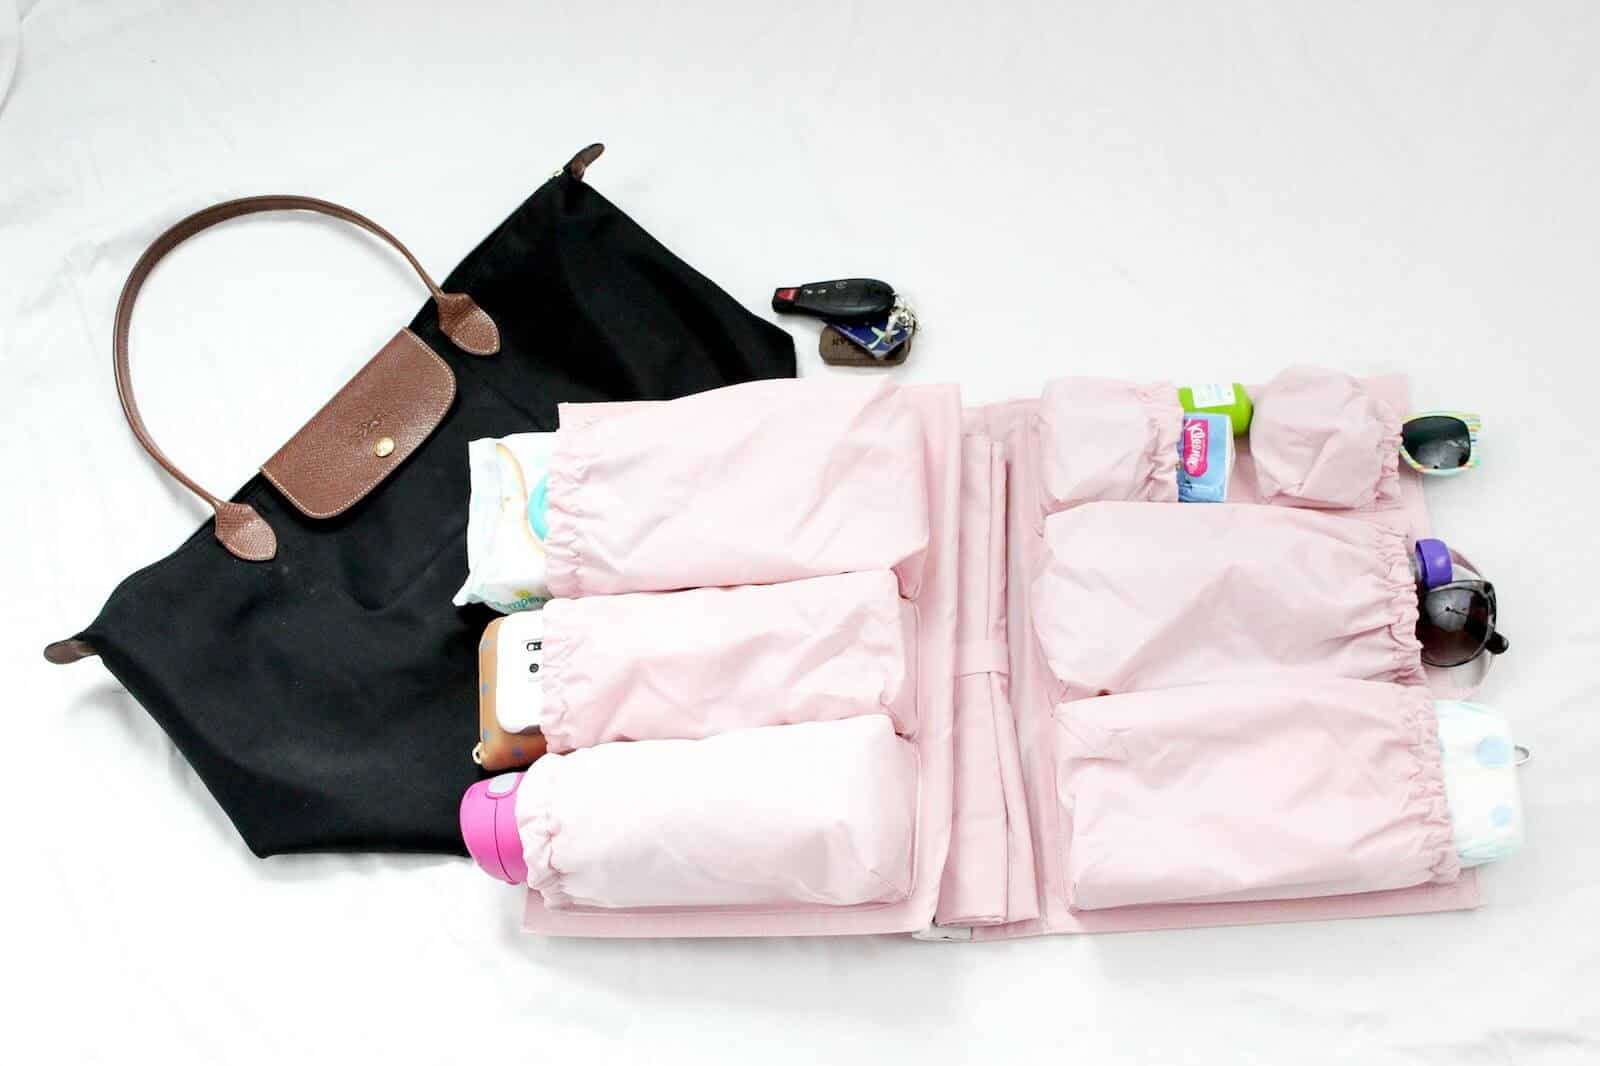 Using the ToteSavvy to turn a purse into a toddler diaper bag, plus all the essentials!